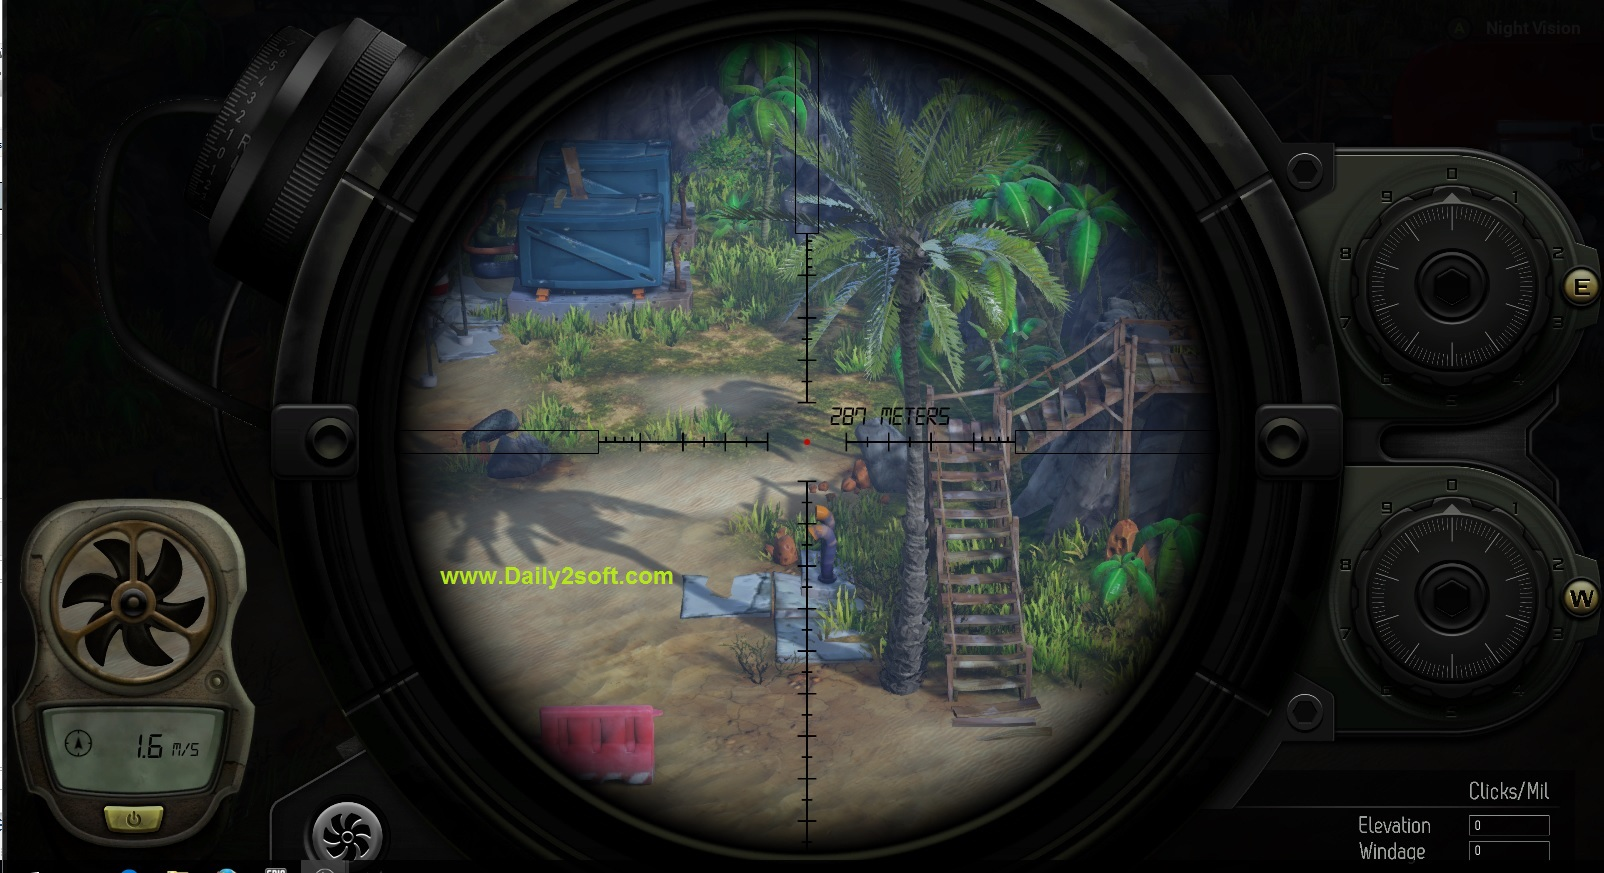 SNIPER BLACKLIST Full Version Download LATEST IS HERE